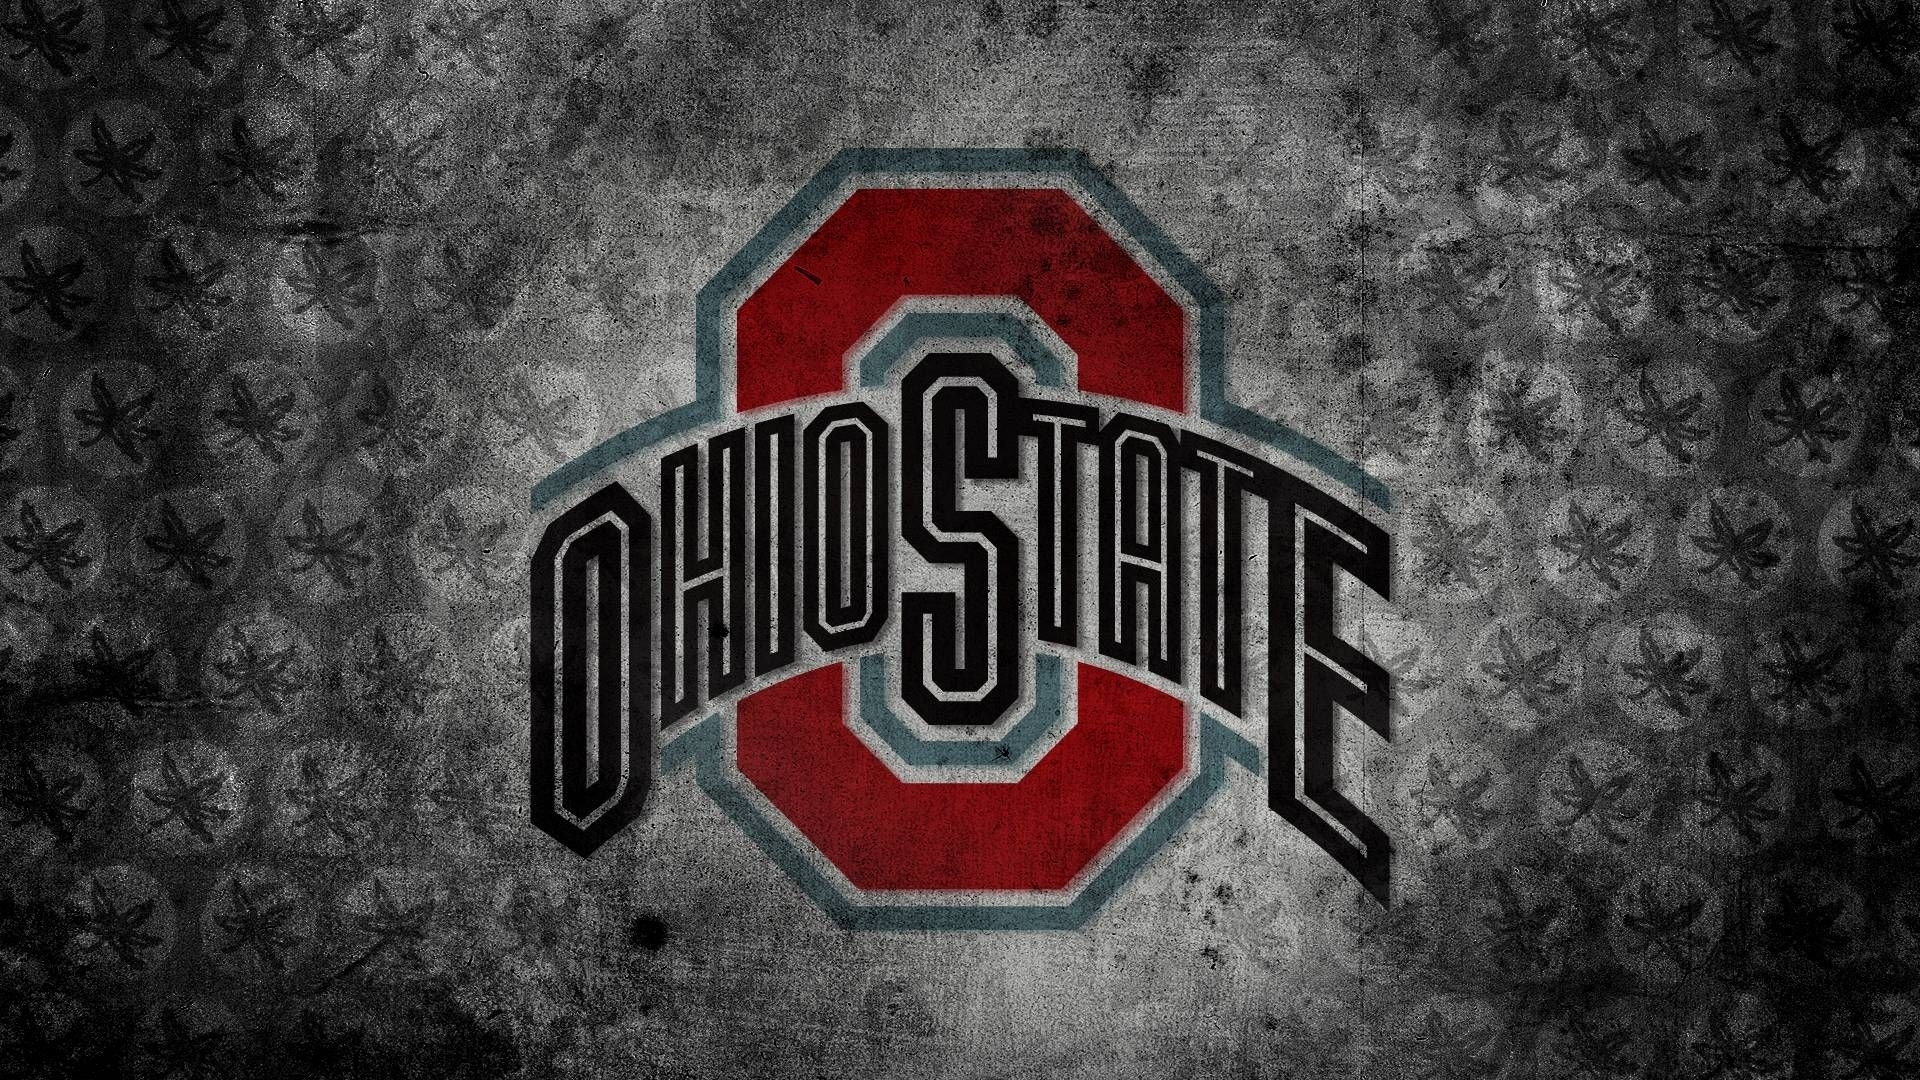 ohio state buckeyes football wallpapers - wallpaper cave | images